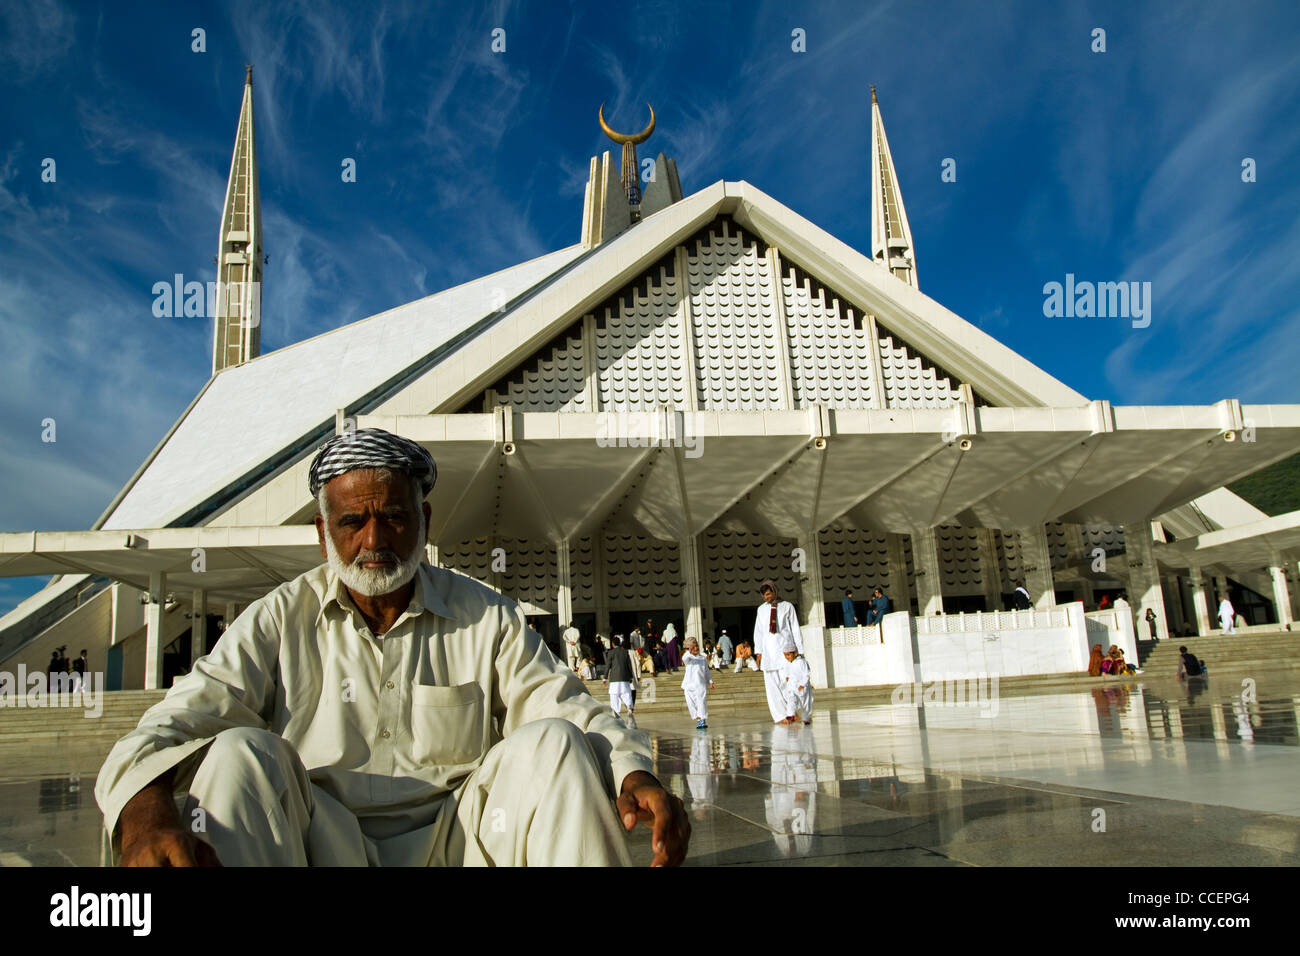 King Faisal Mosque and prayers Islamabad Pakistan - Stock Image